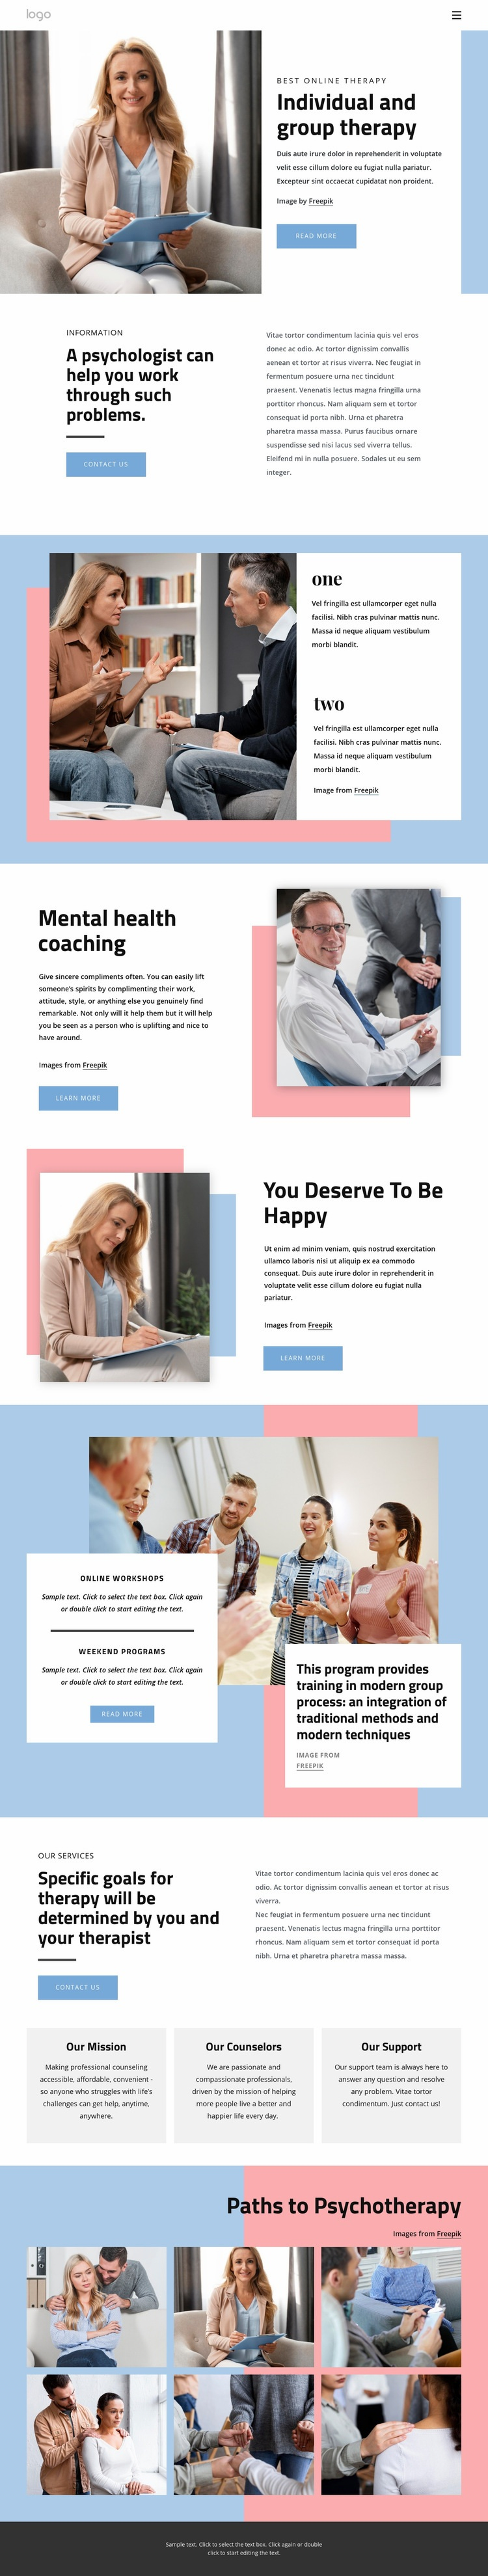 Undividual and group therapy Web Page Designer